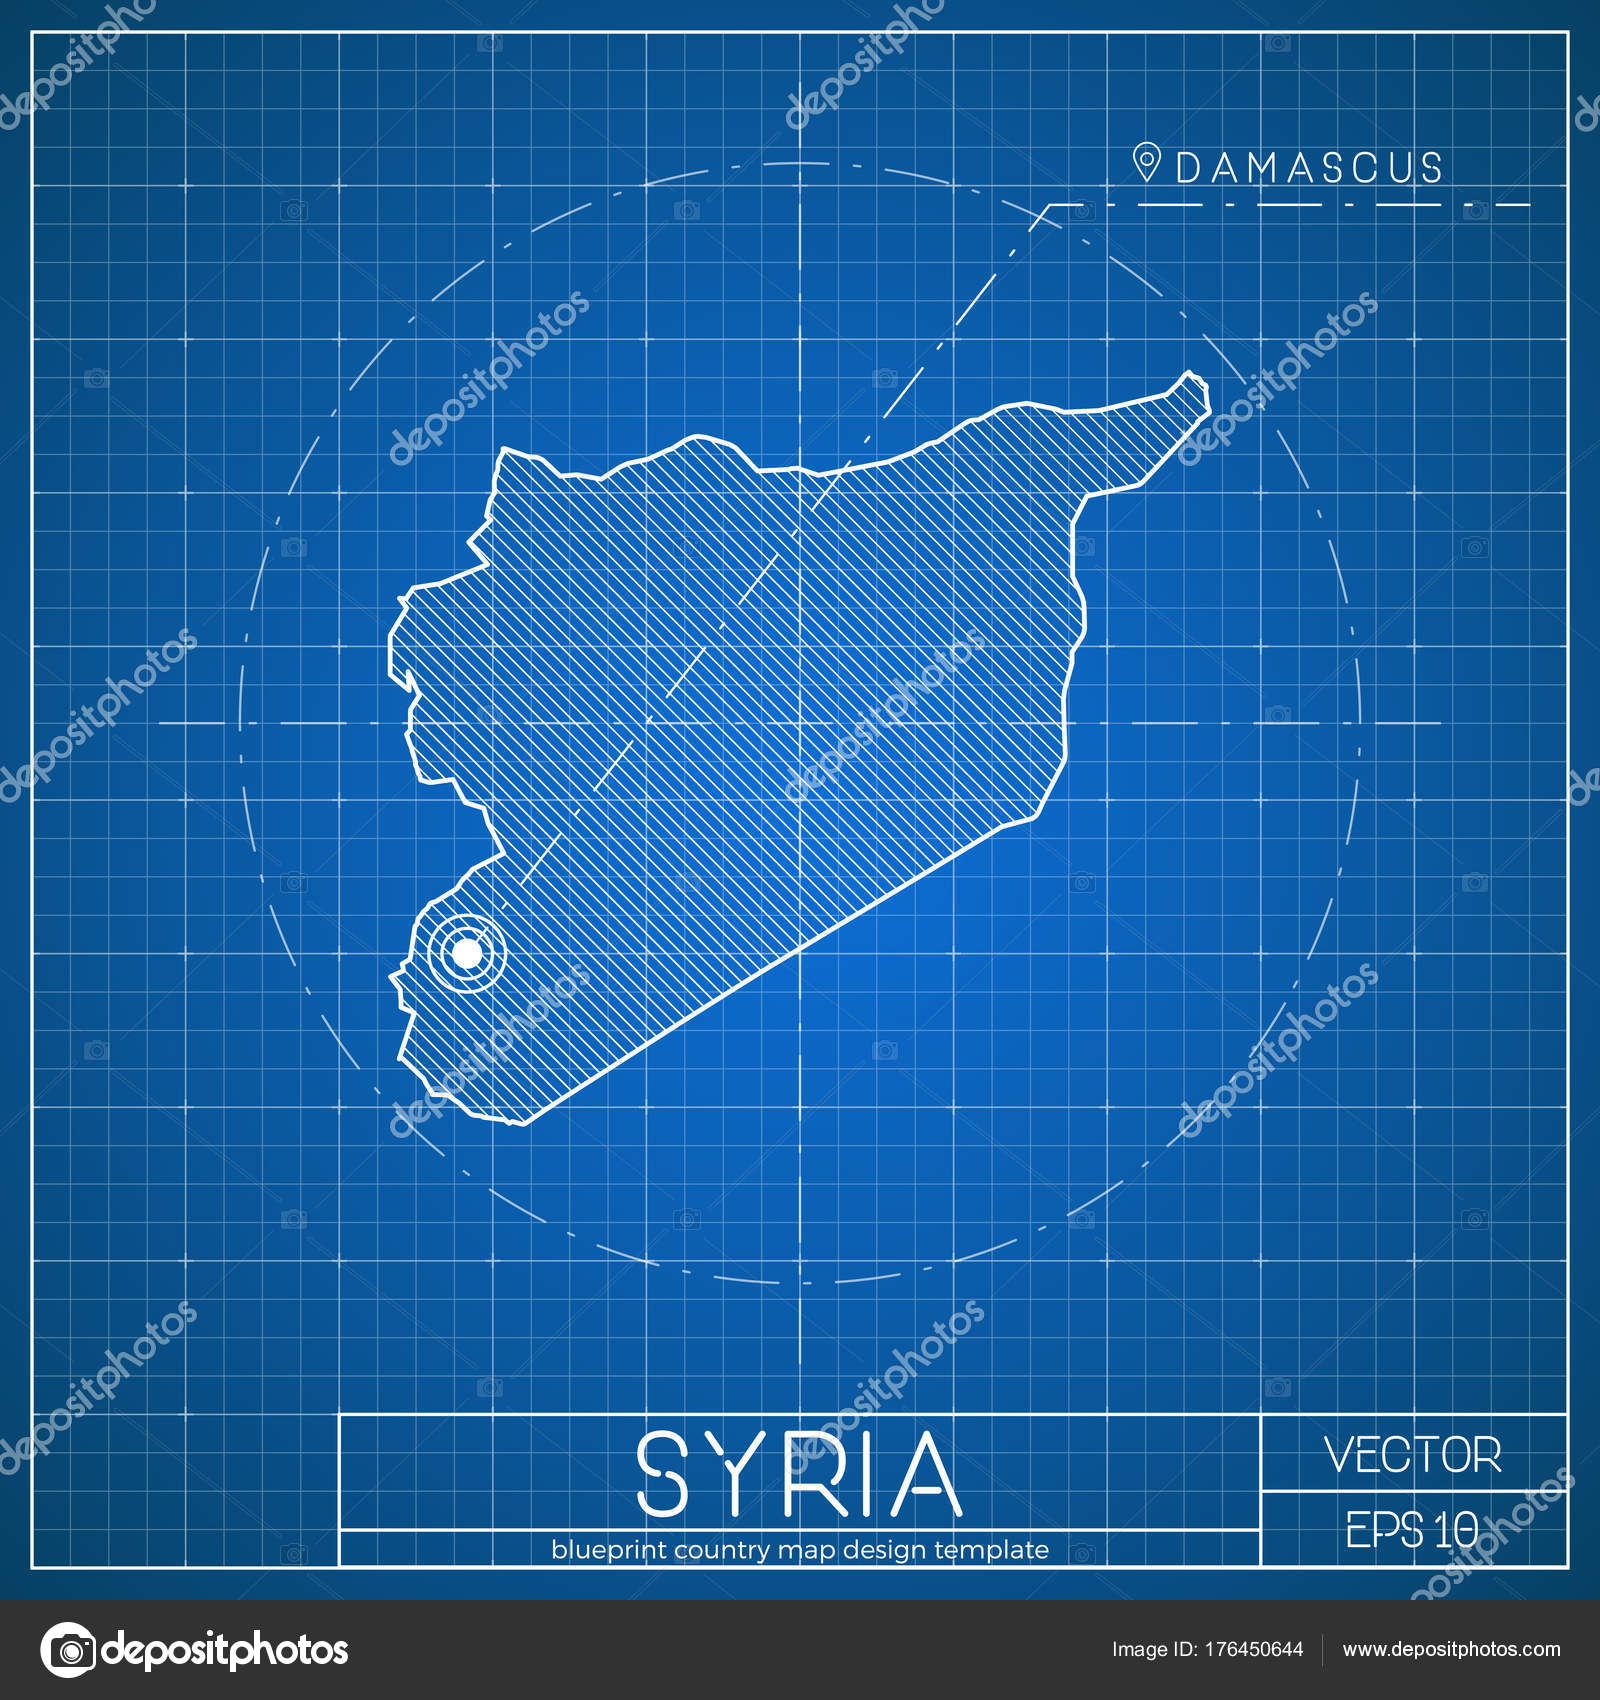 Syria Blueprint Map Template With Capital City Damascus Marked On Syrian Vector Stock